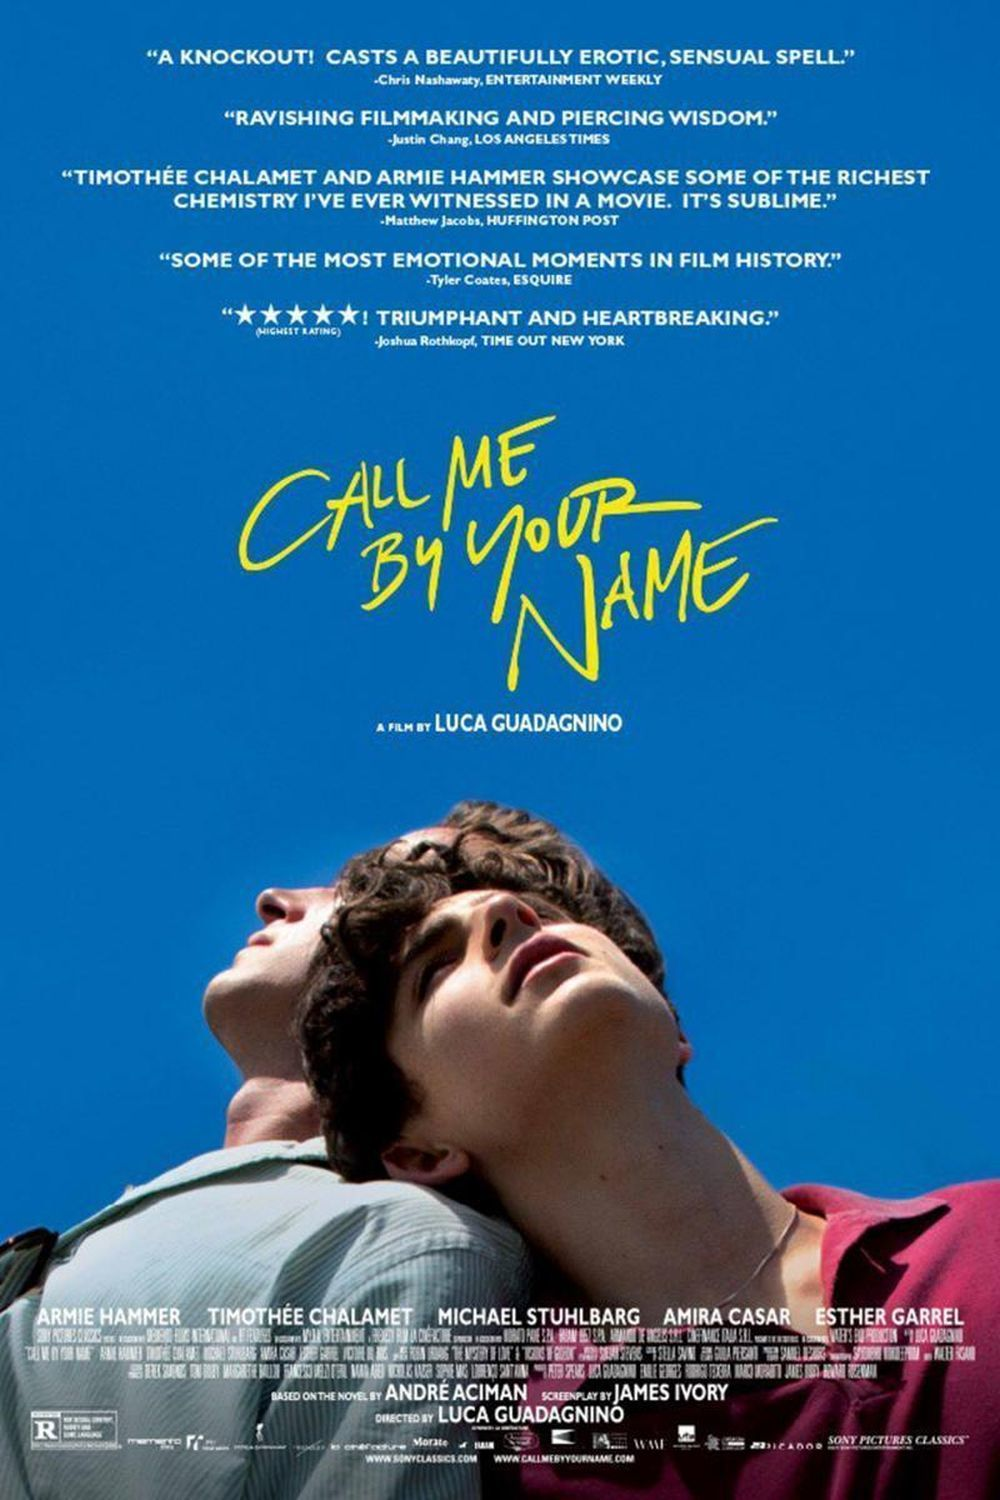 Cartel de la película Call me be your name.